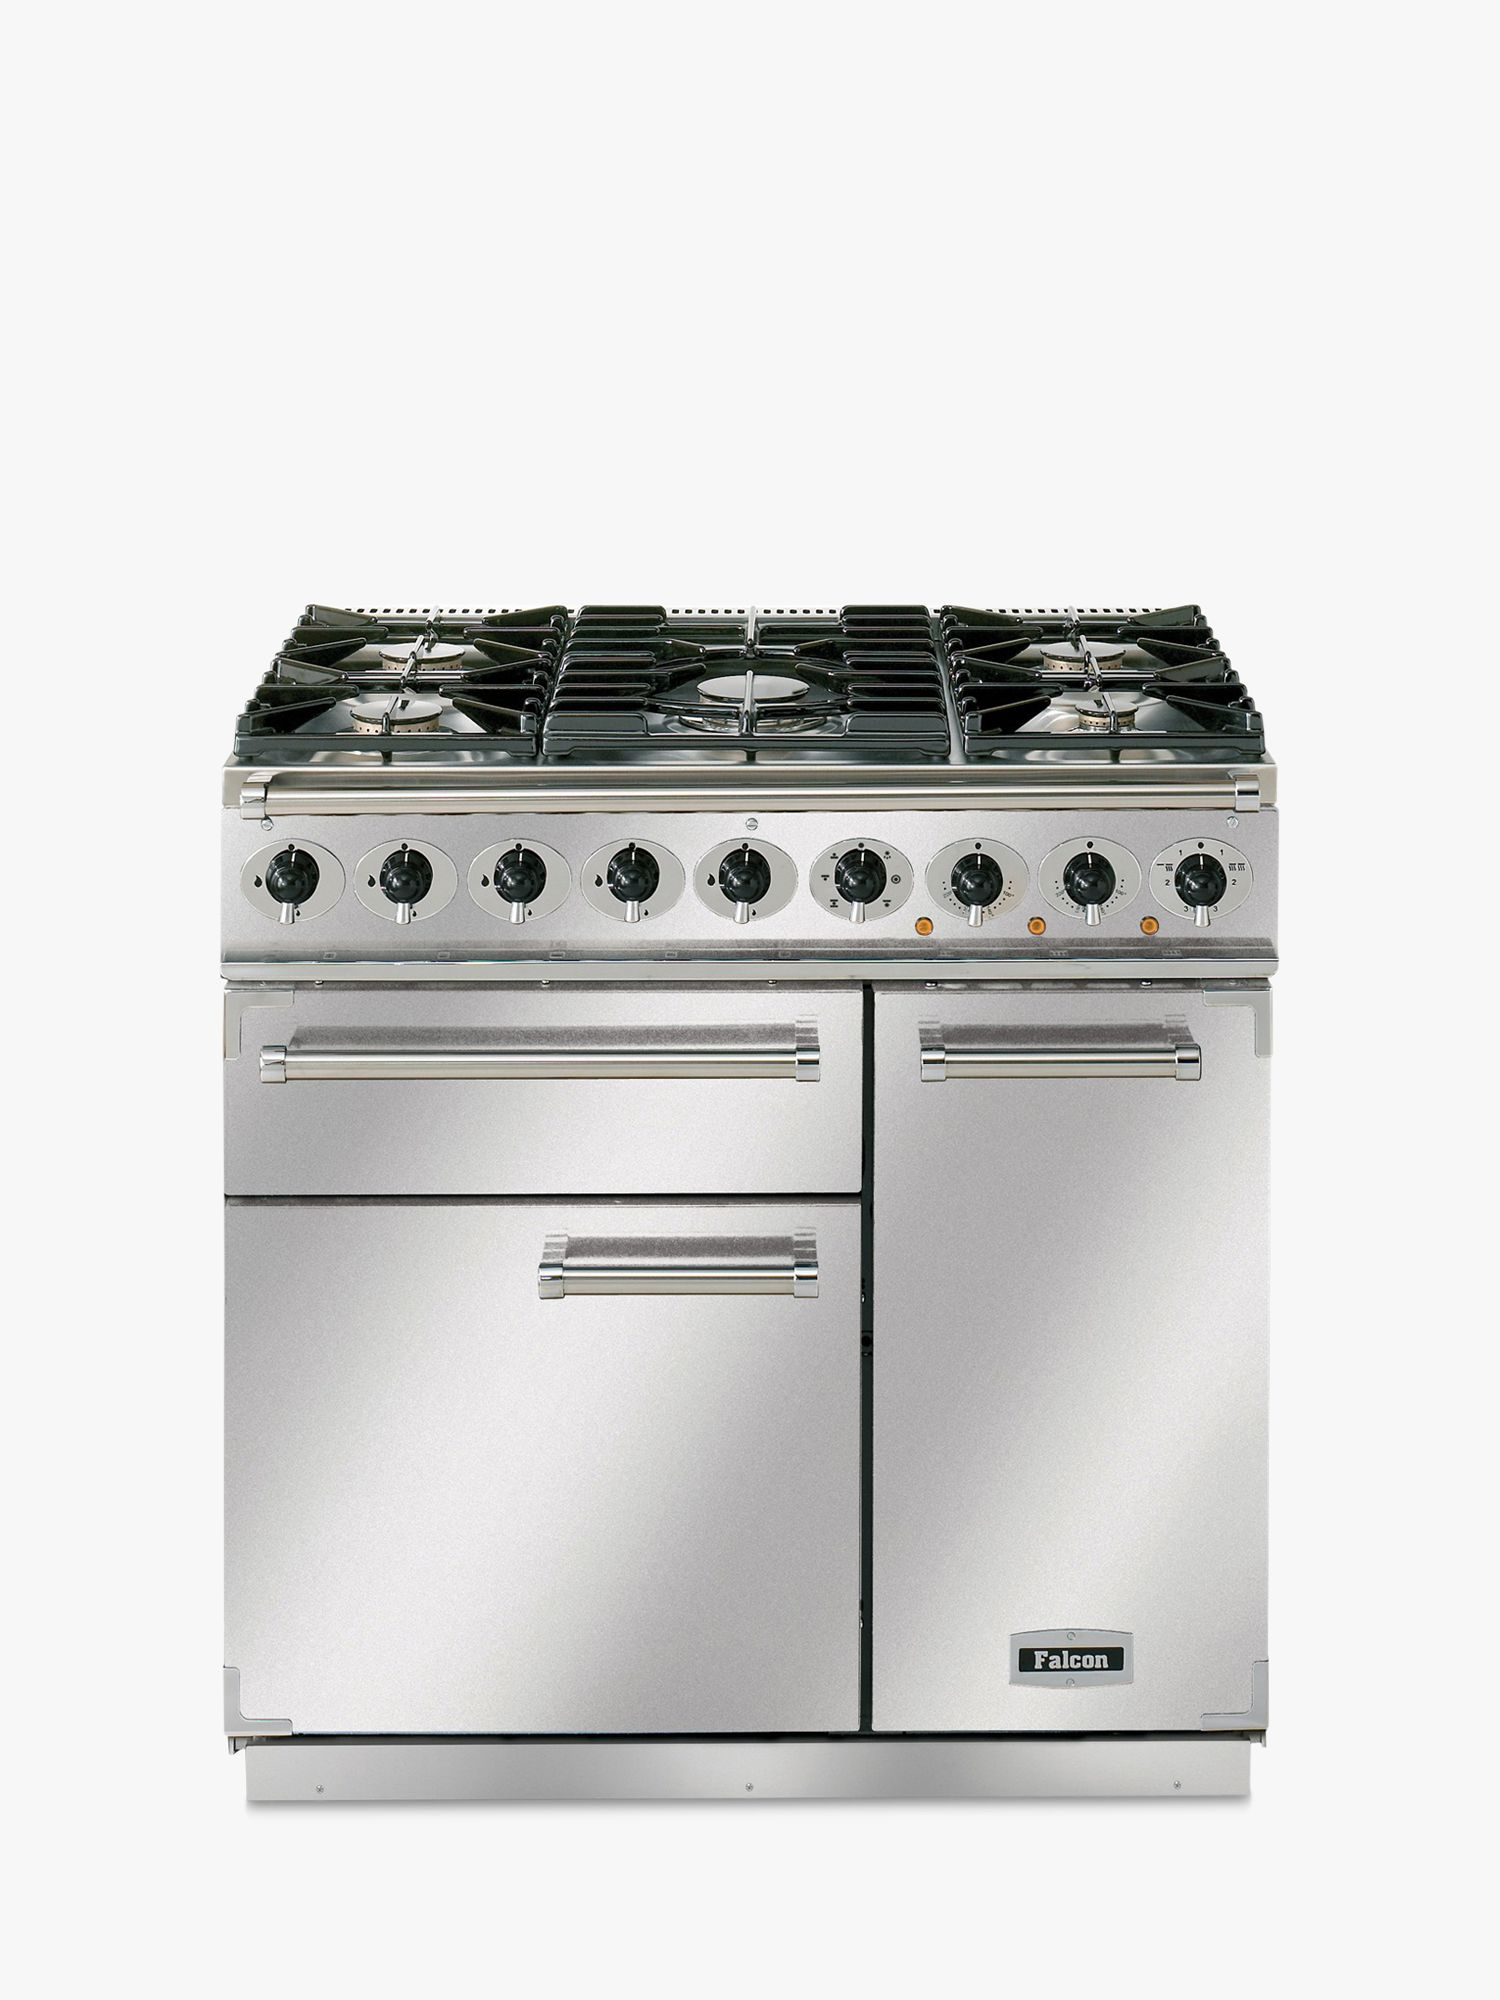 Falcon Falcon 900 Deluxe Dual Fuel Range Cooker, Stainless Steel